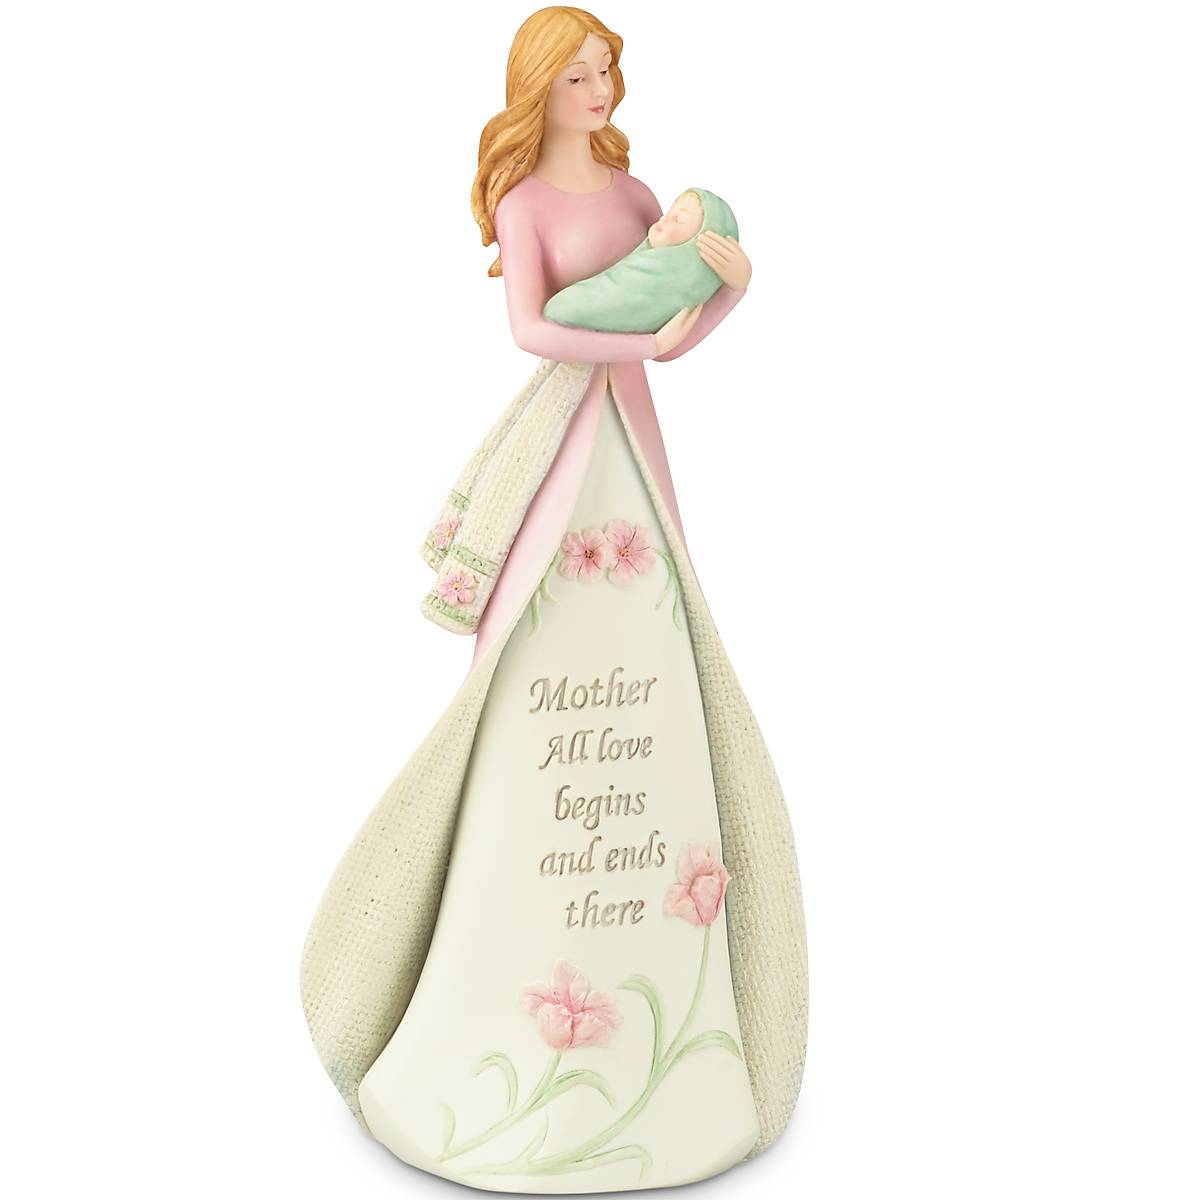 Image of A Mother's Joy Figurine by Lenox